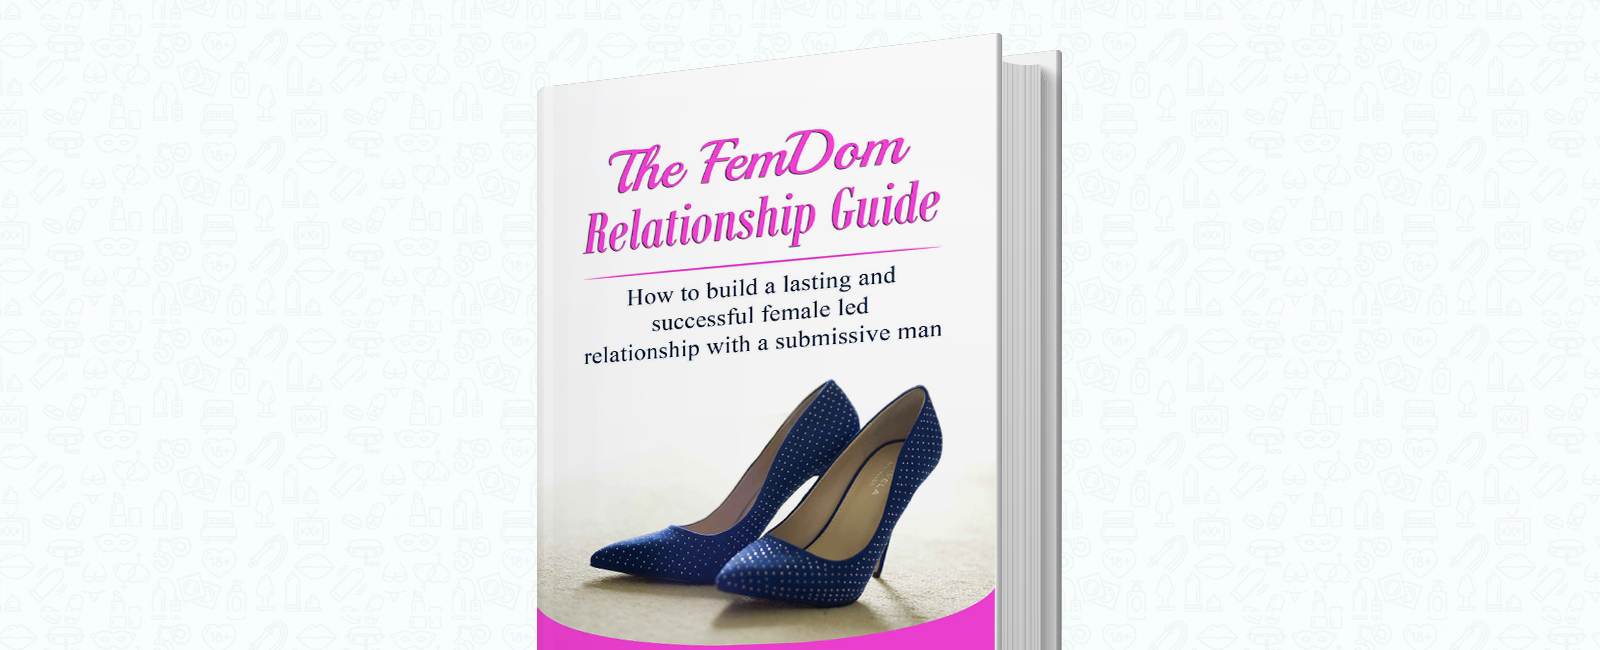 The Femdom Relationship Guide